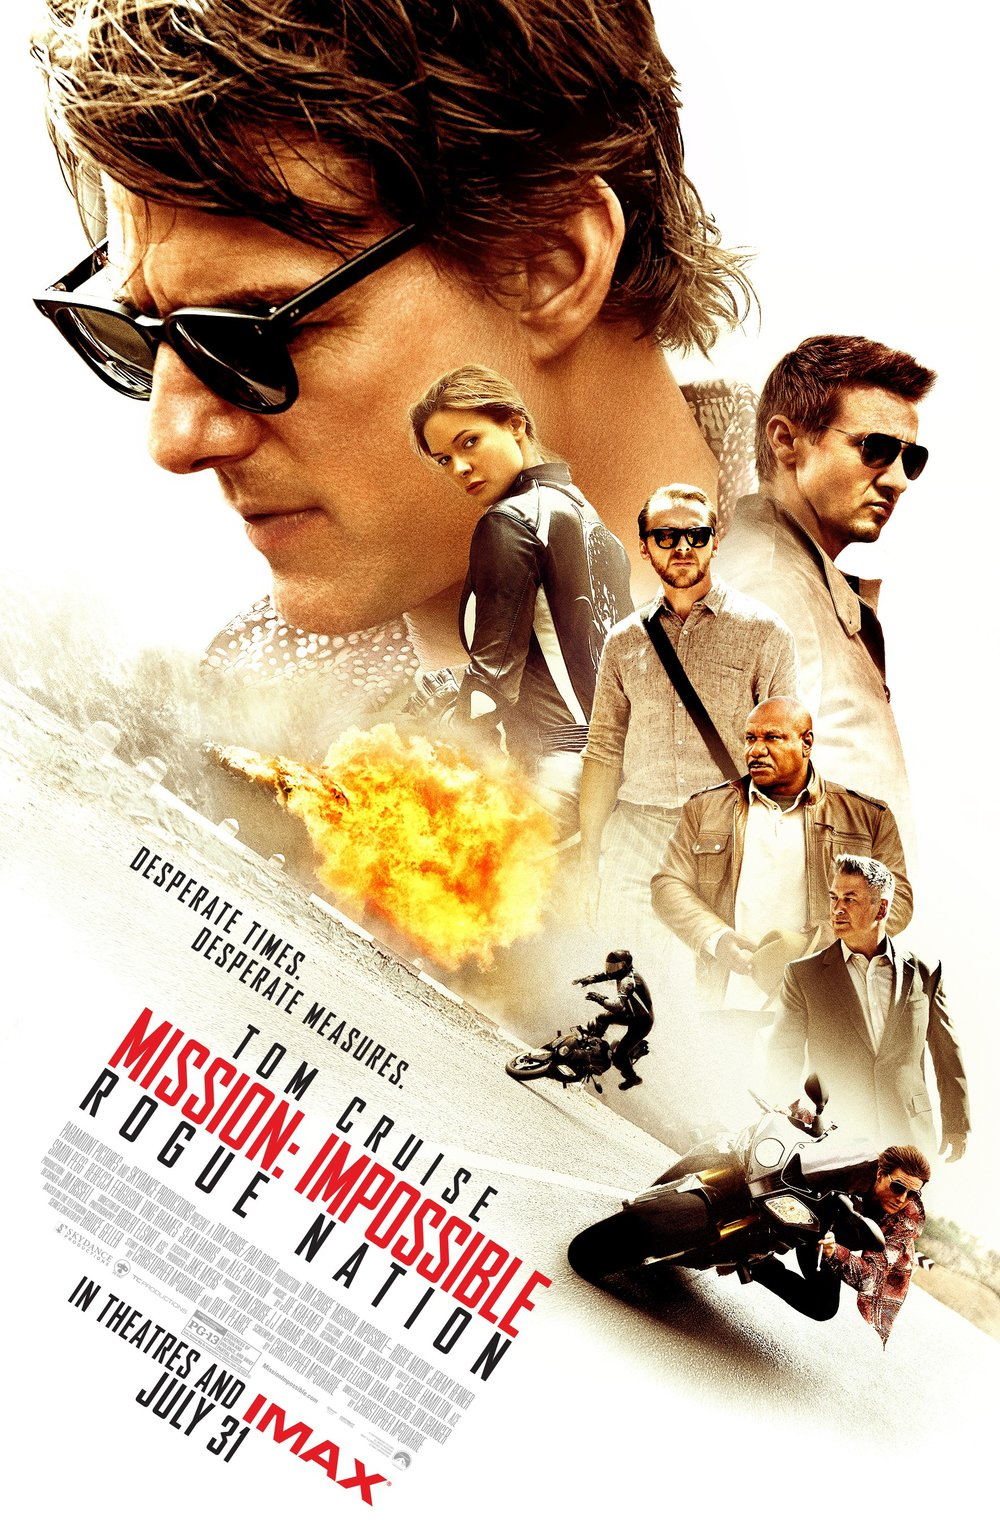 Mission: Impossible: Rogue Nation (2015) - Directed by: Christopher McQuarrieStarring: Tom Cruise, Rebecca Ferguson, Simon PeggRated: PG-13 for Sequences of Action and Violence, and Brief Partial NudityRunning Time: 2 h 11 mTMM Score: 4 stars out of 5STRENGTHS: Action, Humor, Actor ChemistryWEAKNESSES: Stakes, Forgettable Villian